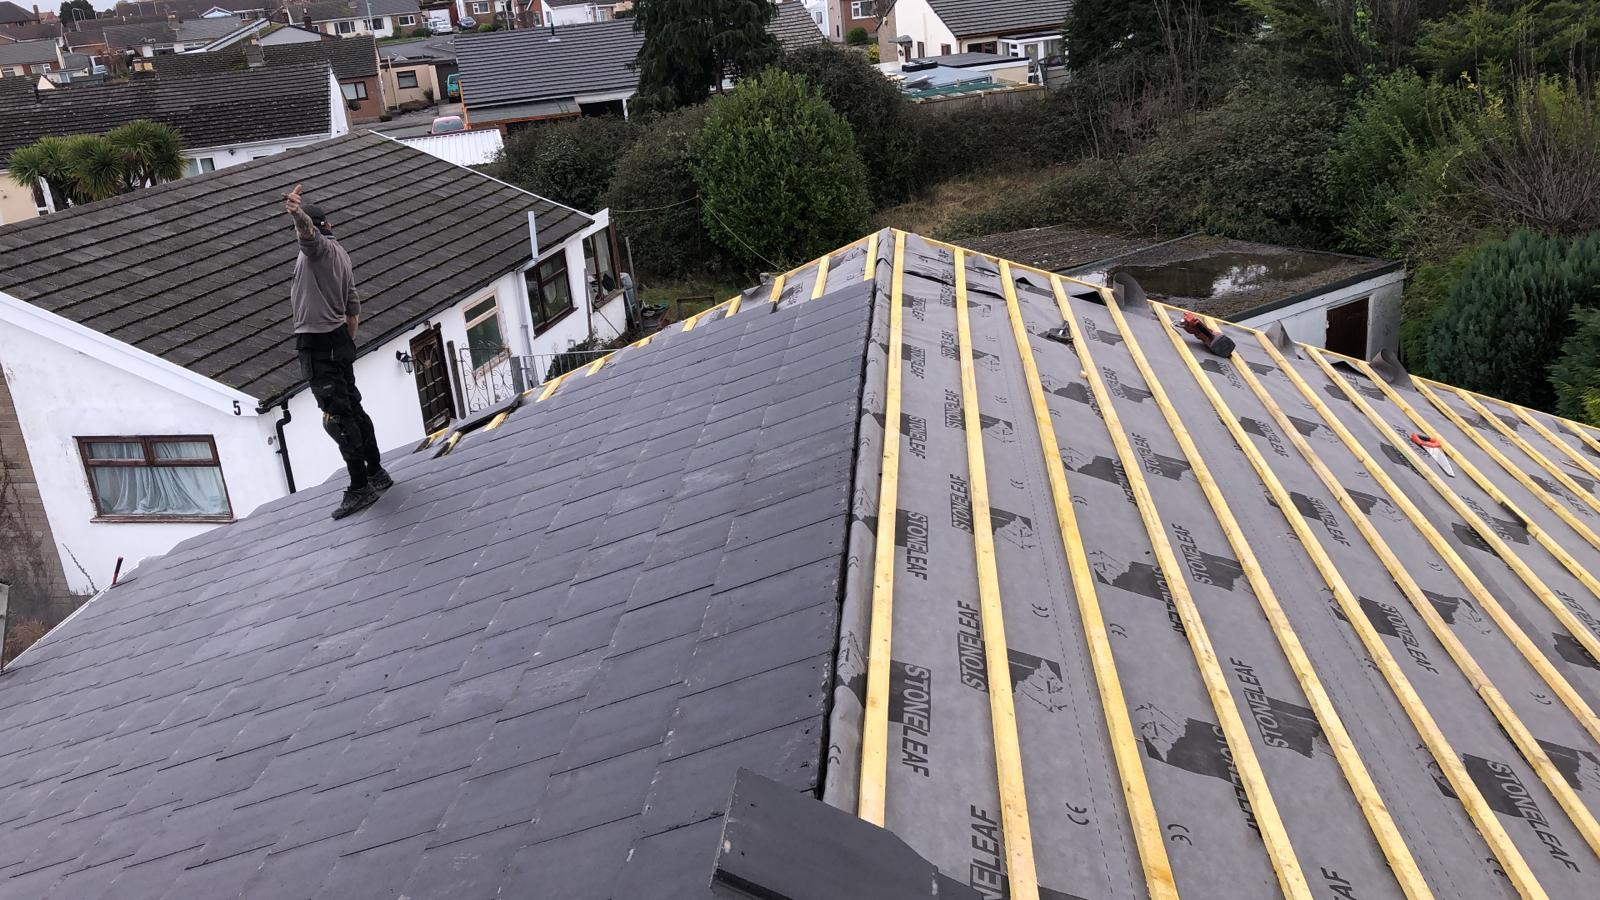 dd-roofing-company-roof-services-contractors-uk-07